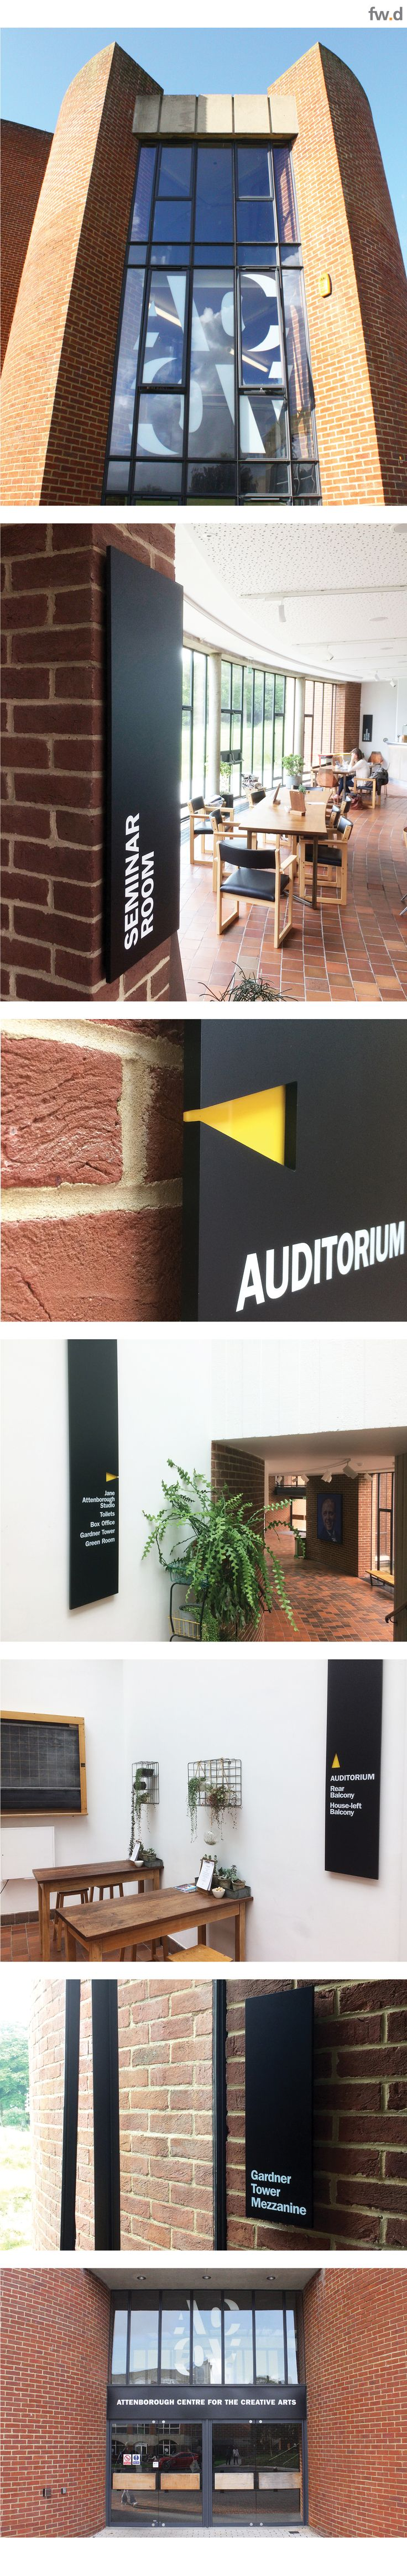 Following the refurbishment of the Attenborough Centre for the Creative Arts fwdesign were asked to implement the new brand mark developed by Pentagram. ACCA opened its doors for the first time and straight into hosting a series of events for the Brighton Festival. We designed and delivered a signage scheme in 3 weeks. We have since been working with ACCA to develop a full range of stunning permanent installations that complement the architecture and comply with Historic Englands guidelines.